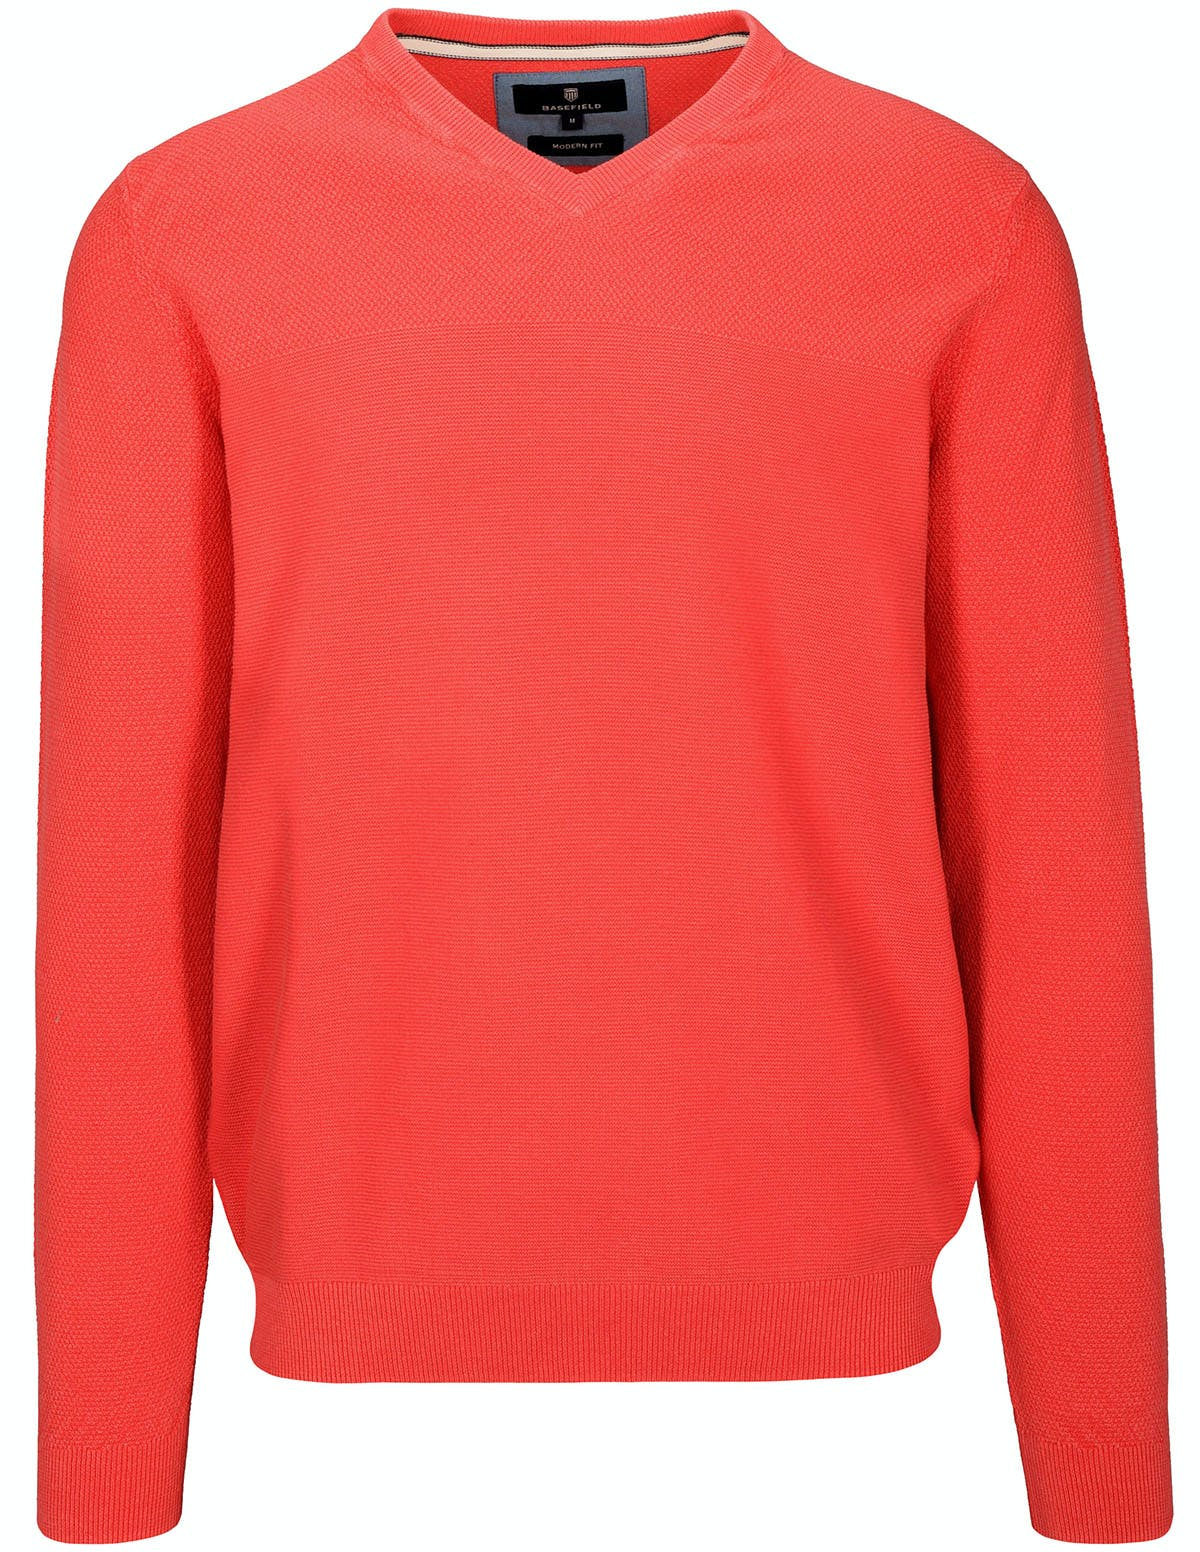 219012781-summer-red__pullover__all